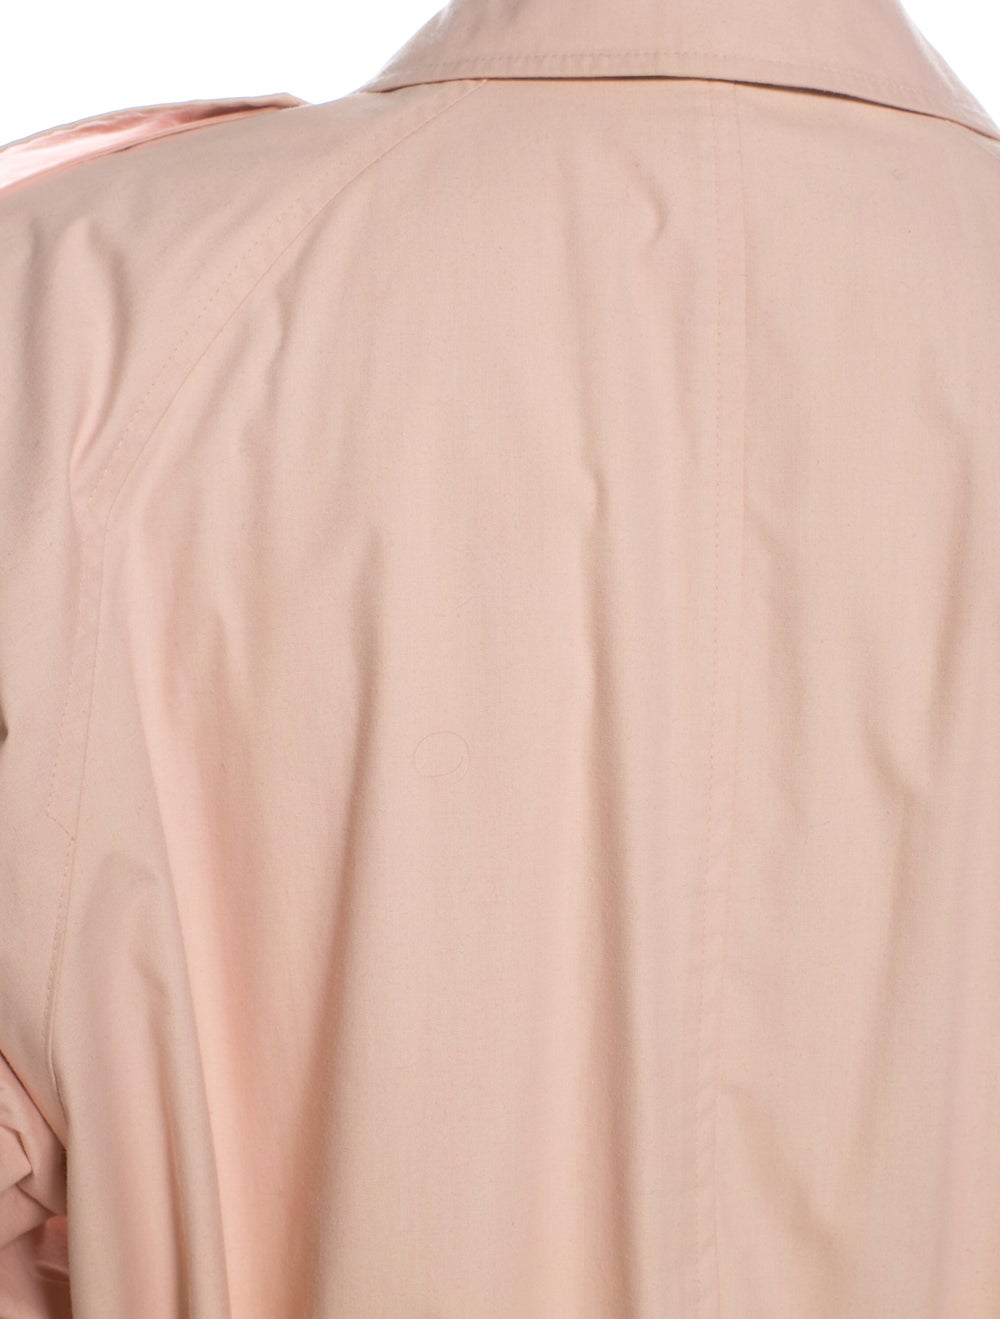 Burberry Vintage Trench Coat Pink - image 4